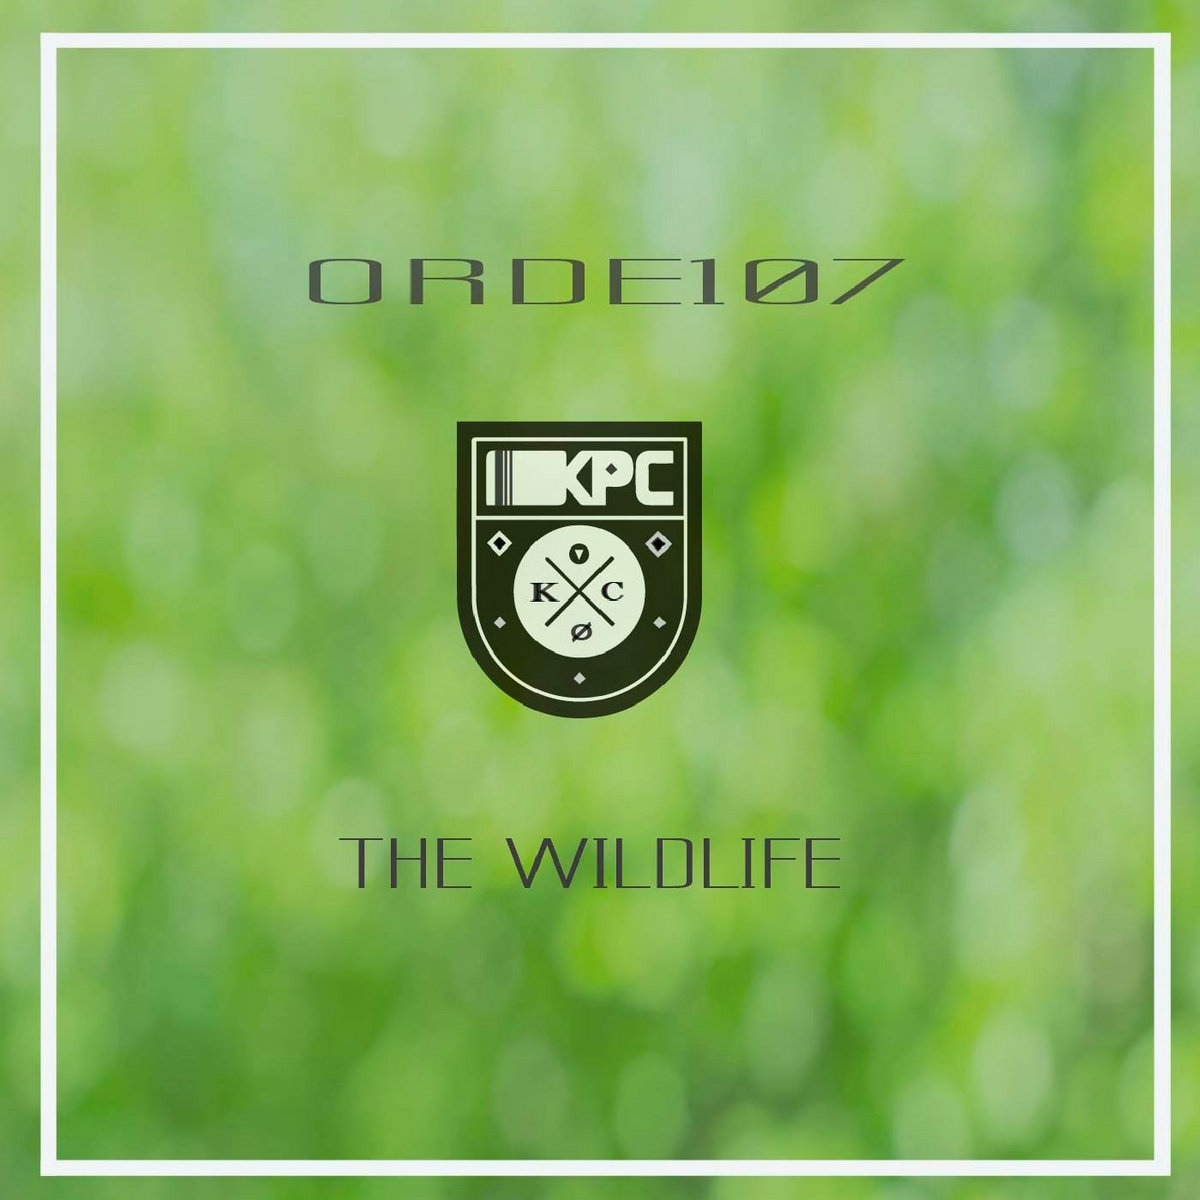 Orde107 – The Wildlife EP